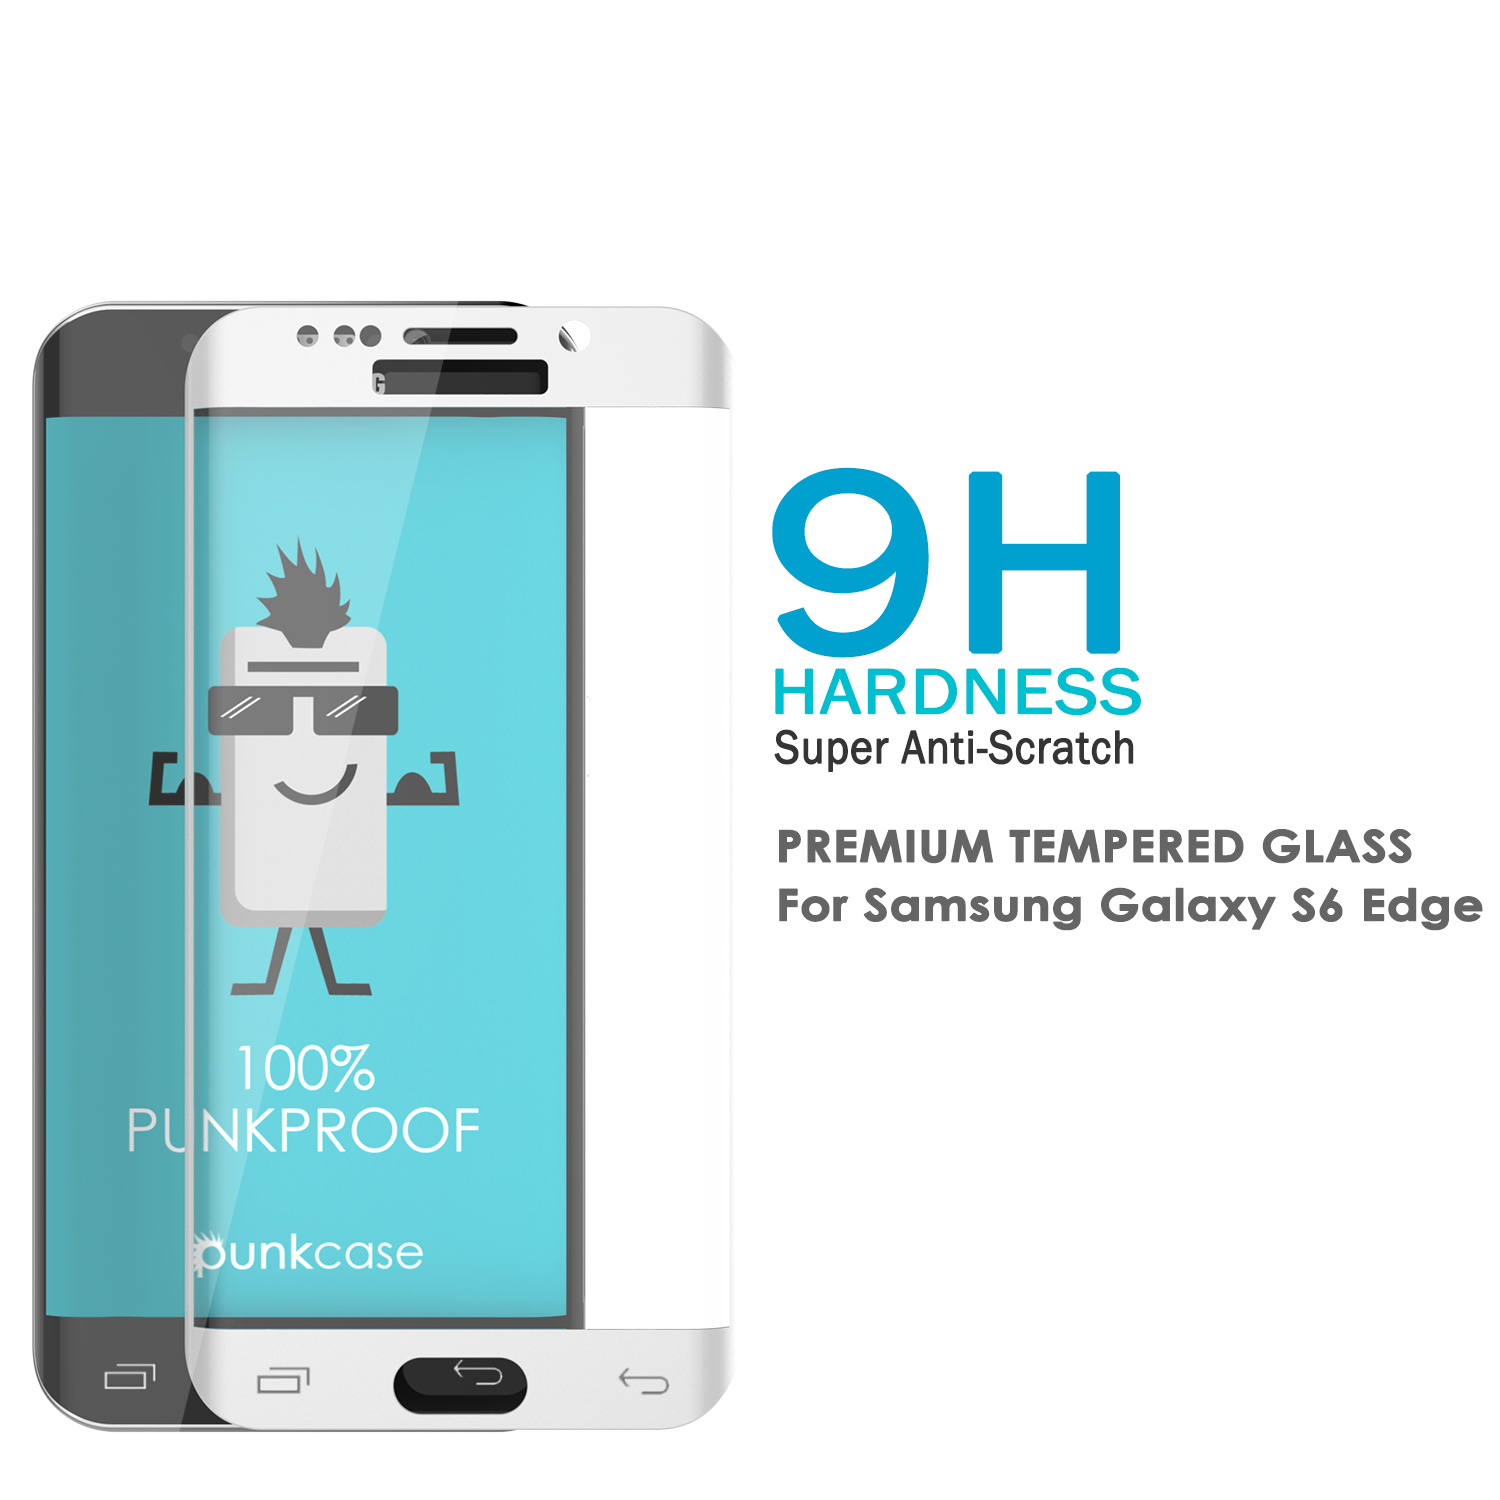 Galaxy S6 Edge Plus White Punkcase Glass SHIELD Tempered Glass Screen Protector 0.33mm Thick 9H